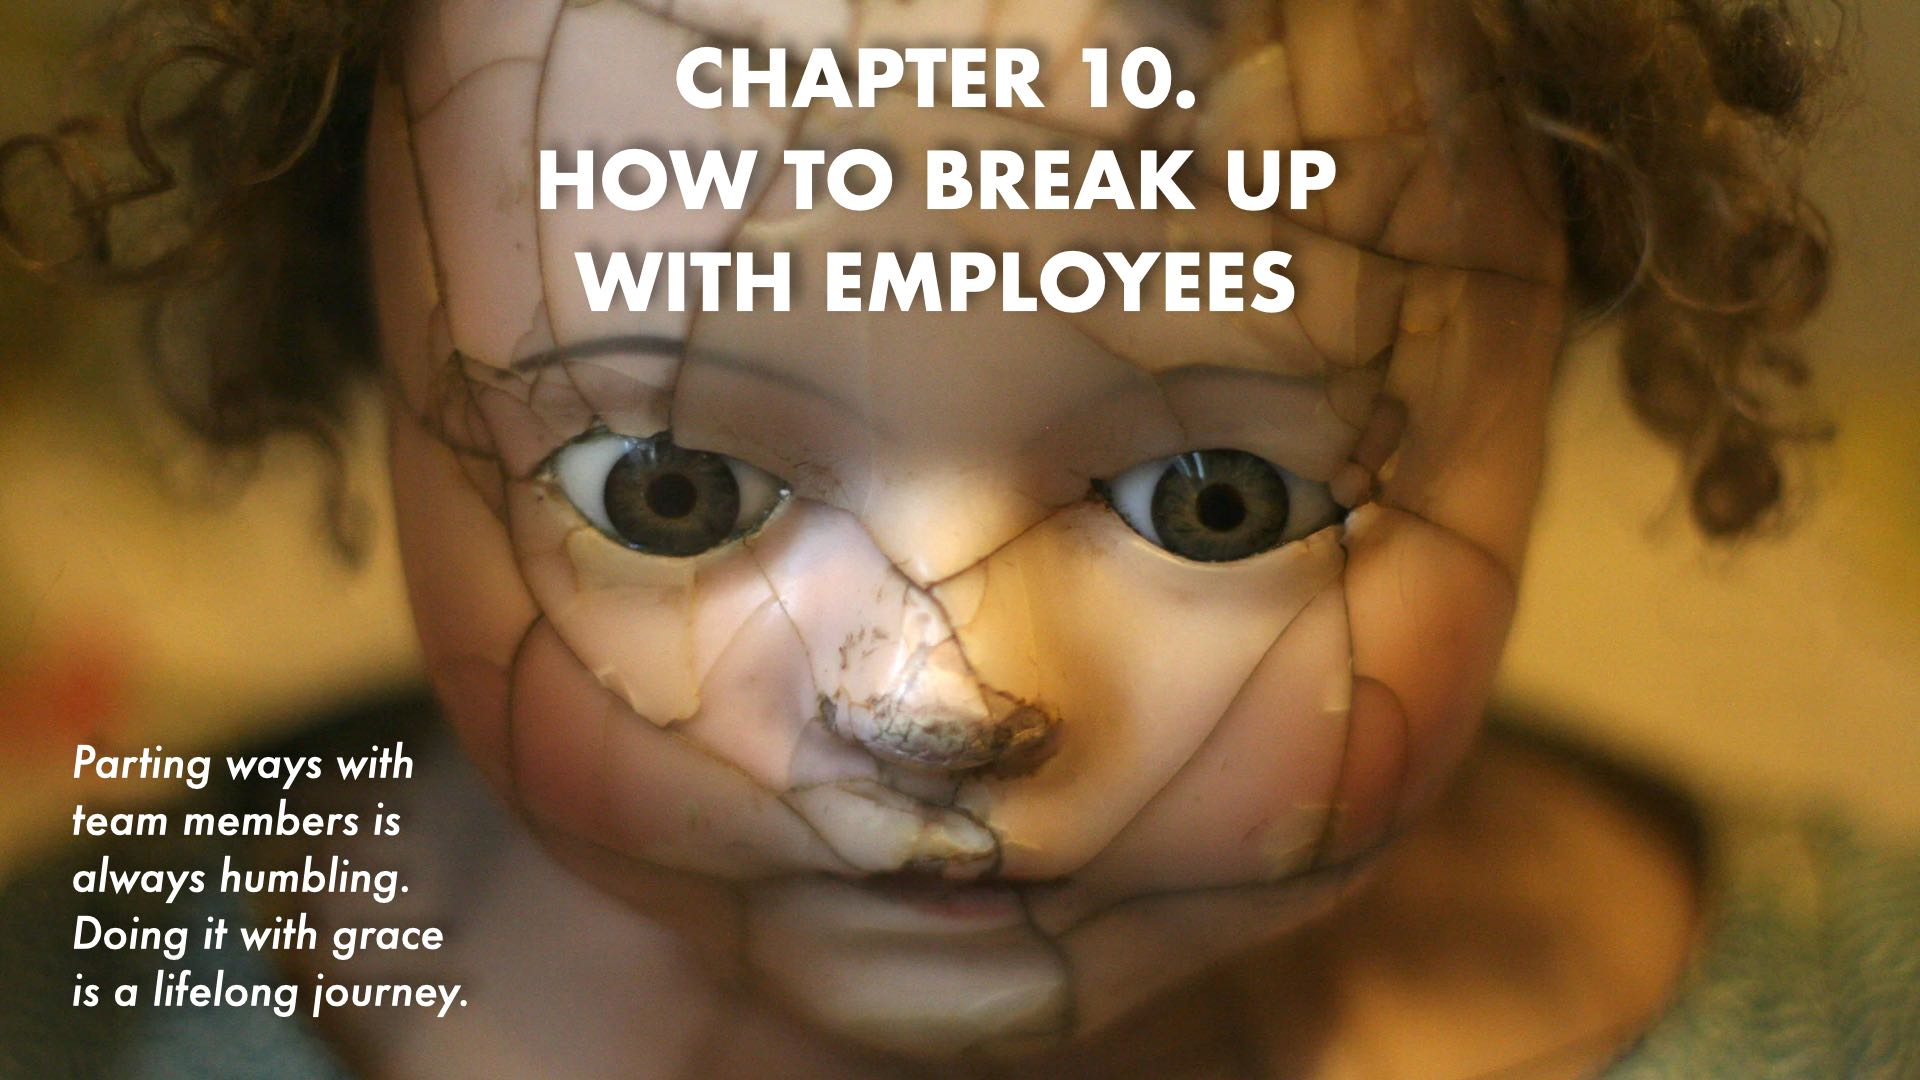 How to Break Up with Employees